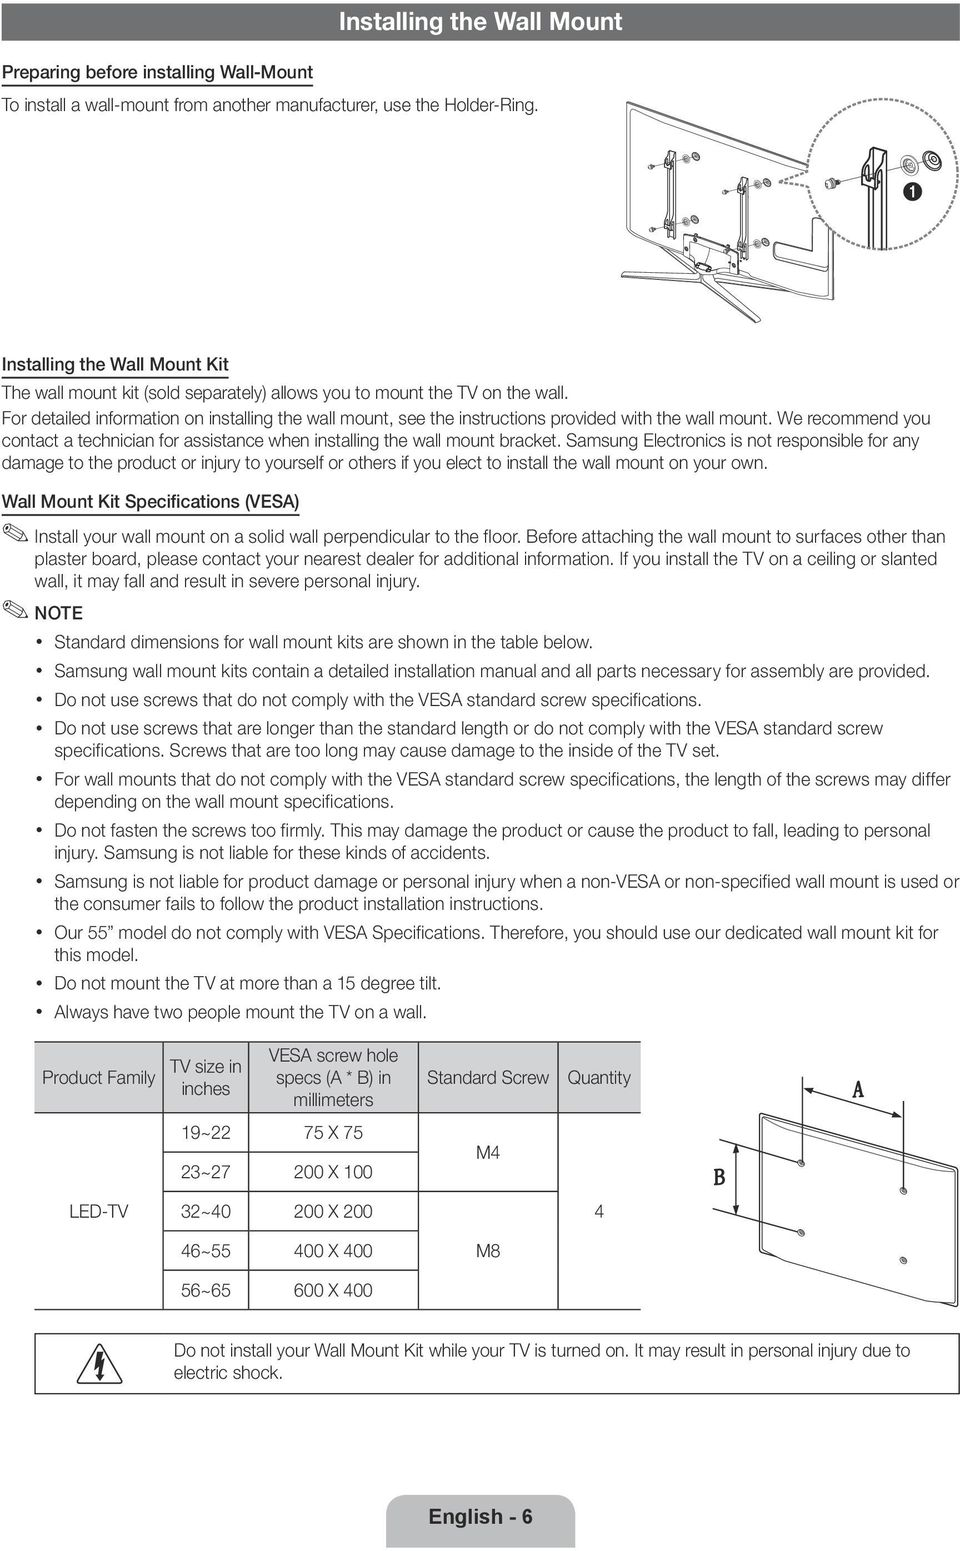 For detailed information on installing the wall mount, see the instructions provided with the wall mount. We recommend you contact a technician for assistance when installing the wall mount bracket.